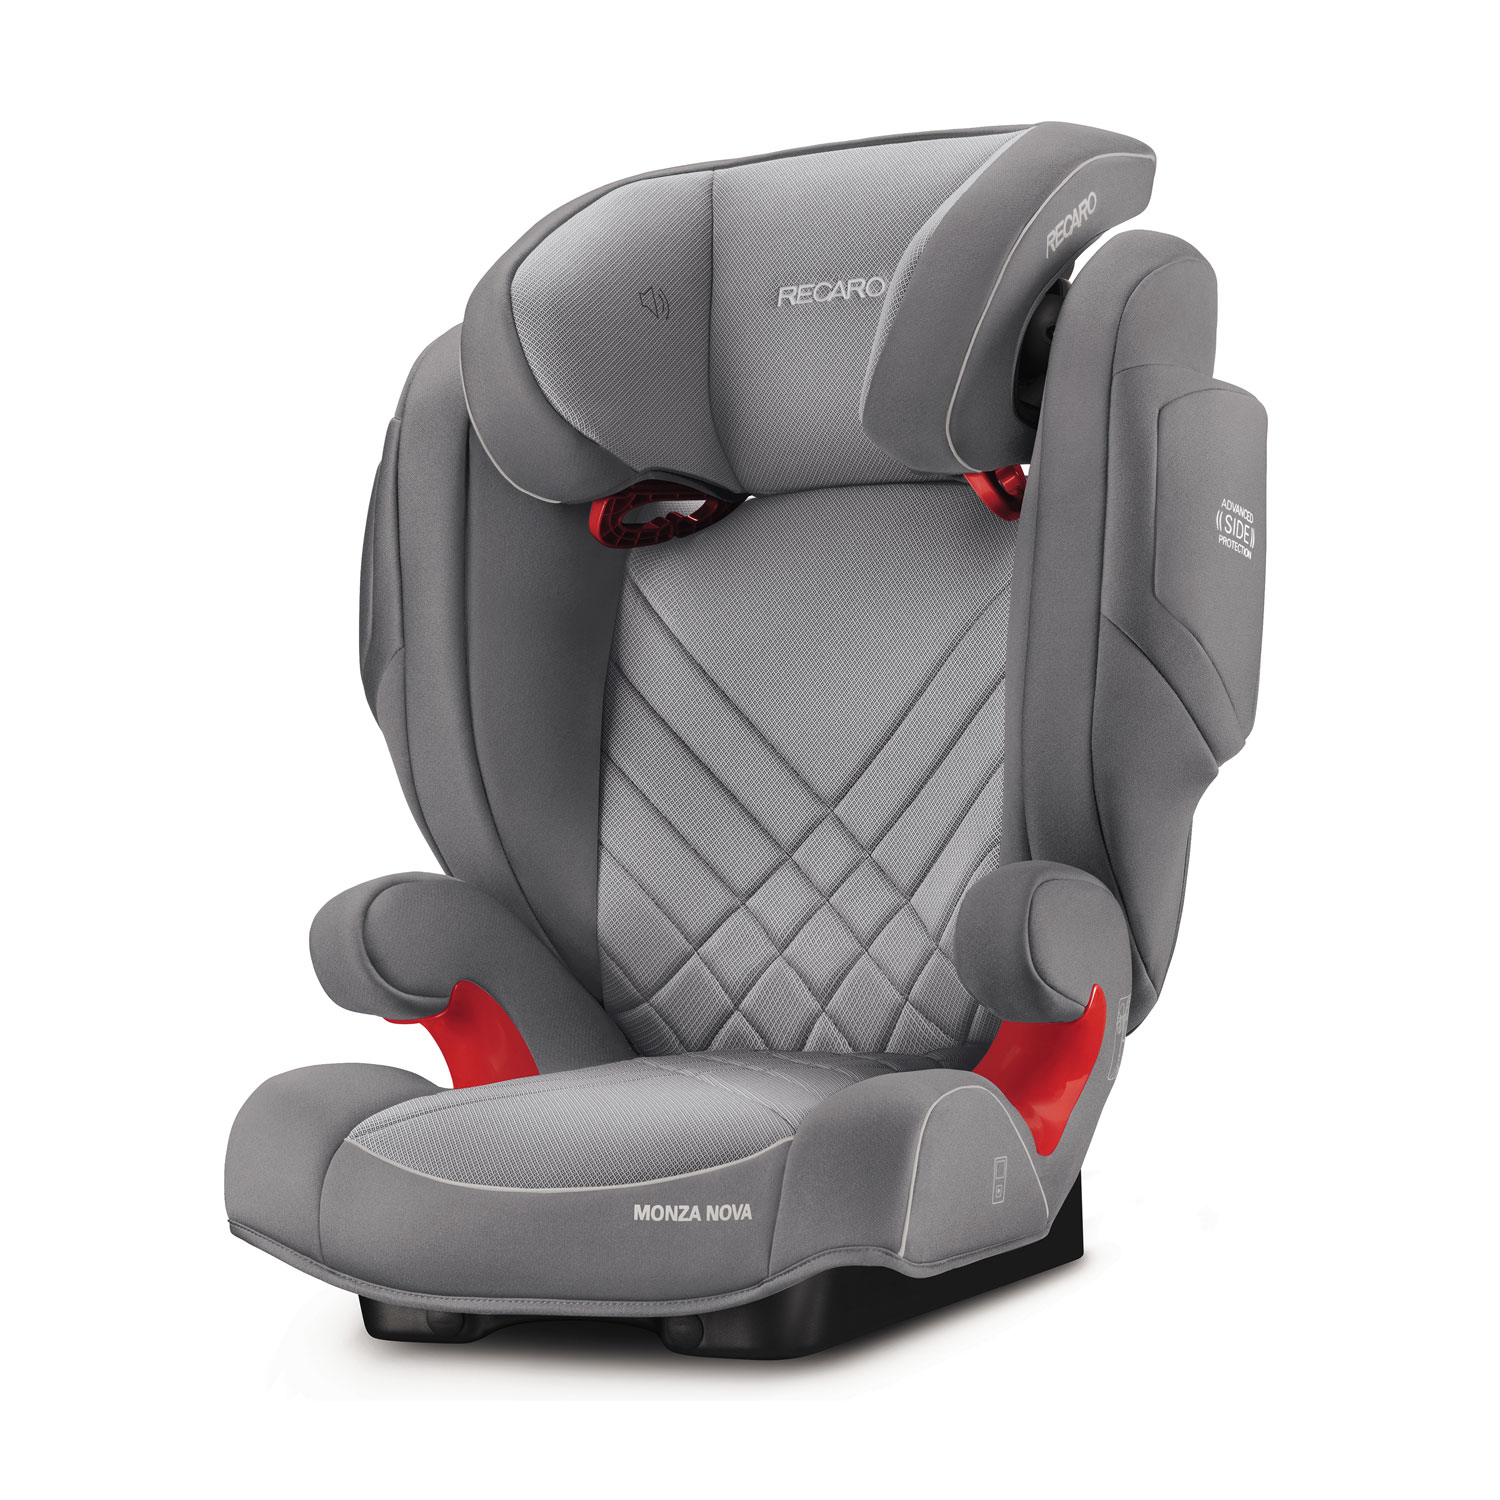 recaro monza nova is aluminium grey kindersitz 9 36 kg aluminium grey fahrzeugaufbau. Black Bedroom Furniture Sets. Home Design Ideas